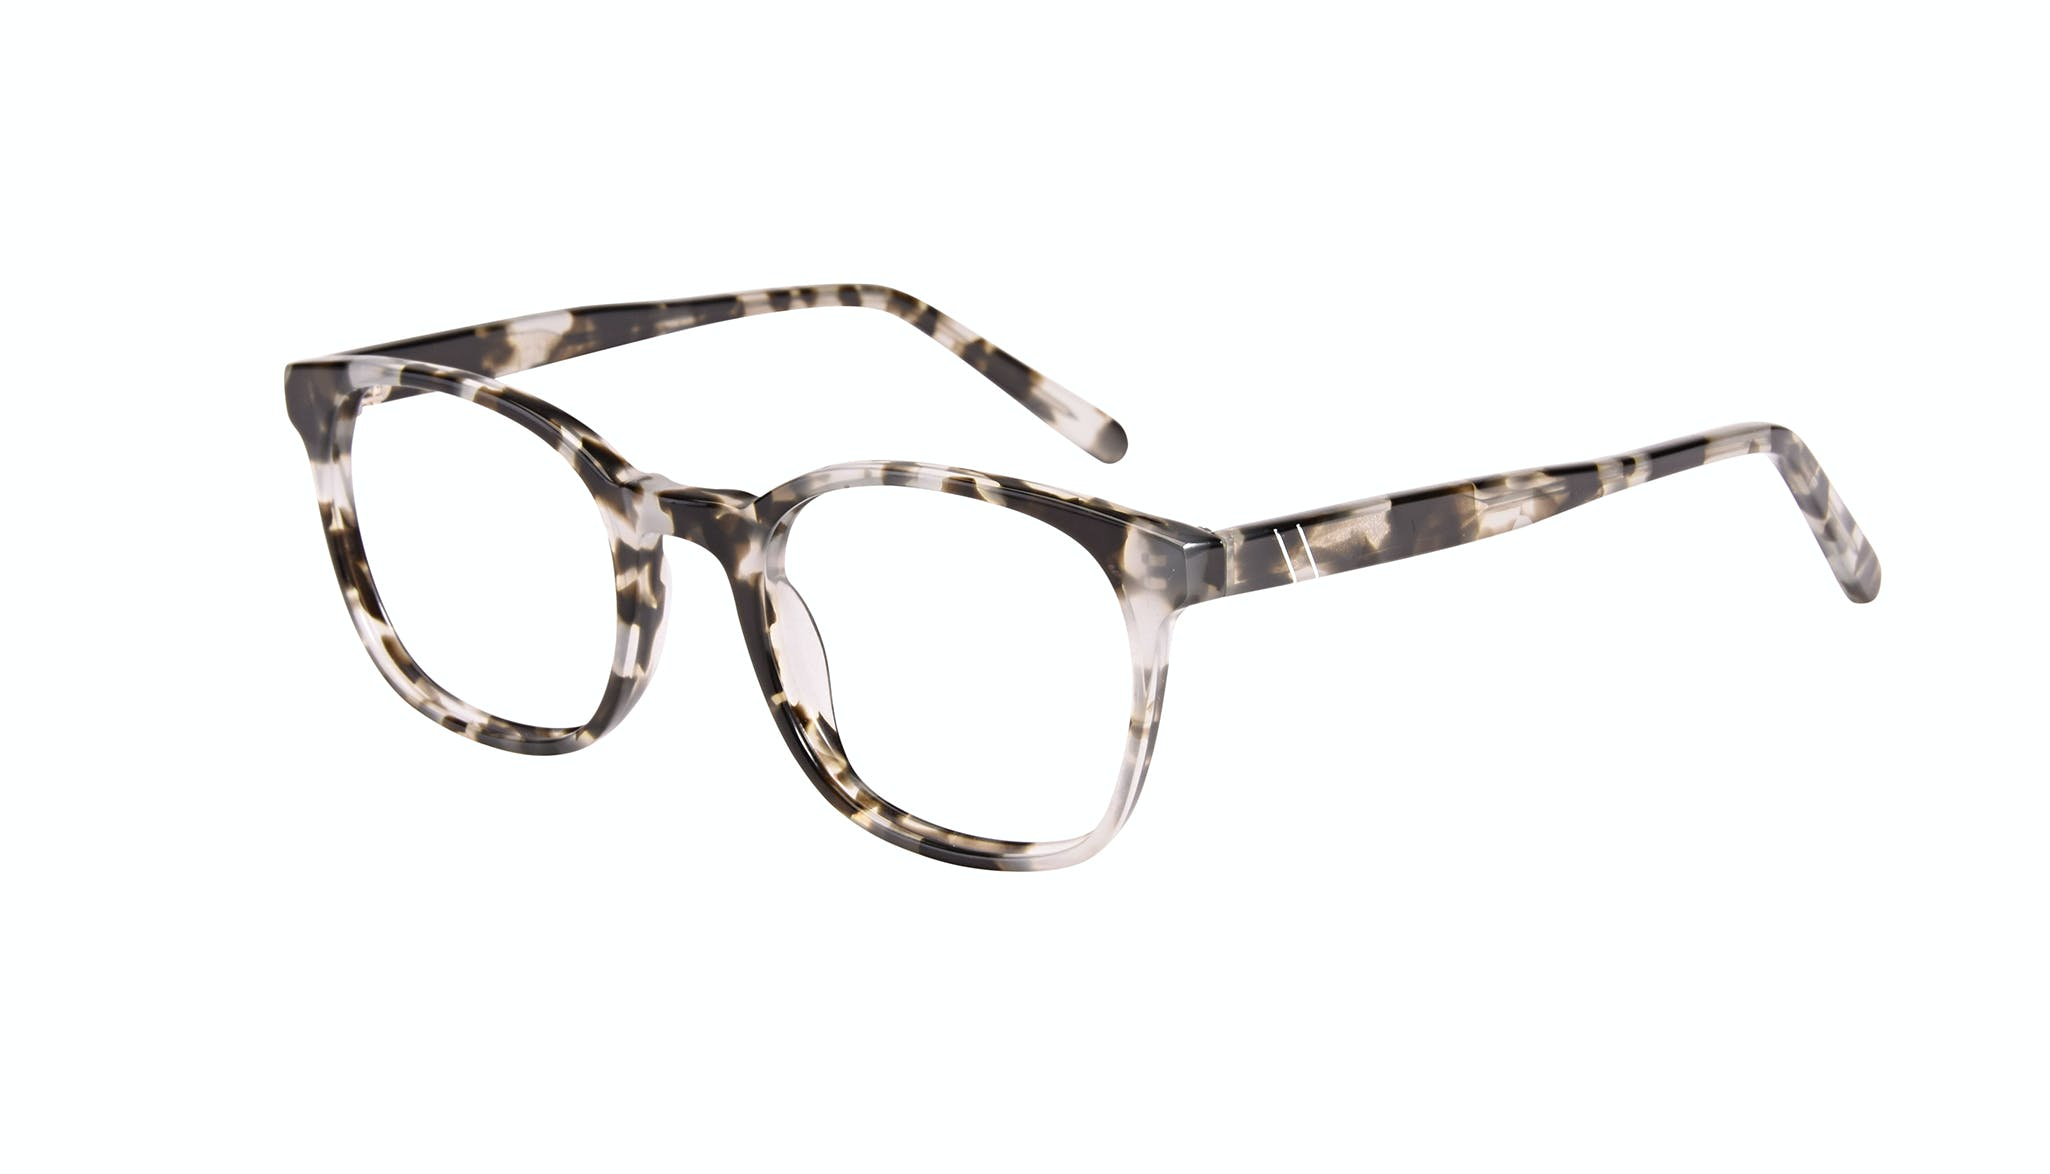 Affordable Fashion Glasses Rectangle Square Eyeglasses Men Peak Camo Tort Tilt